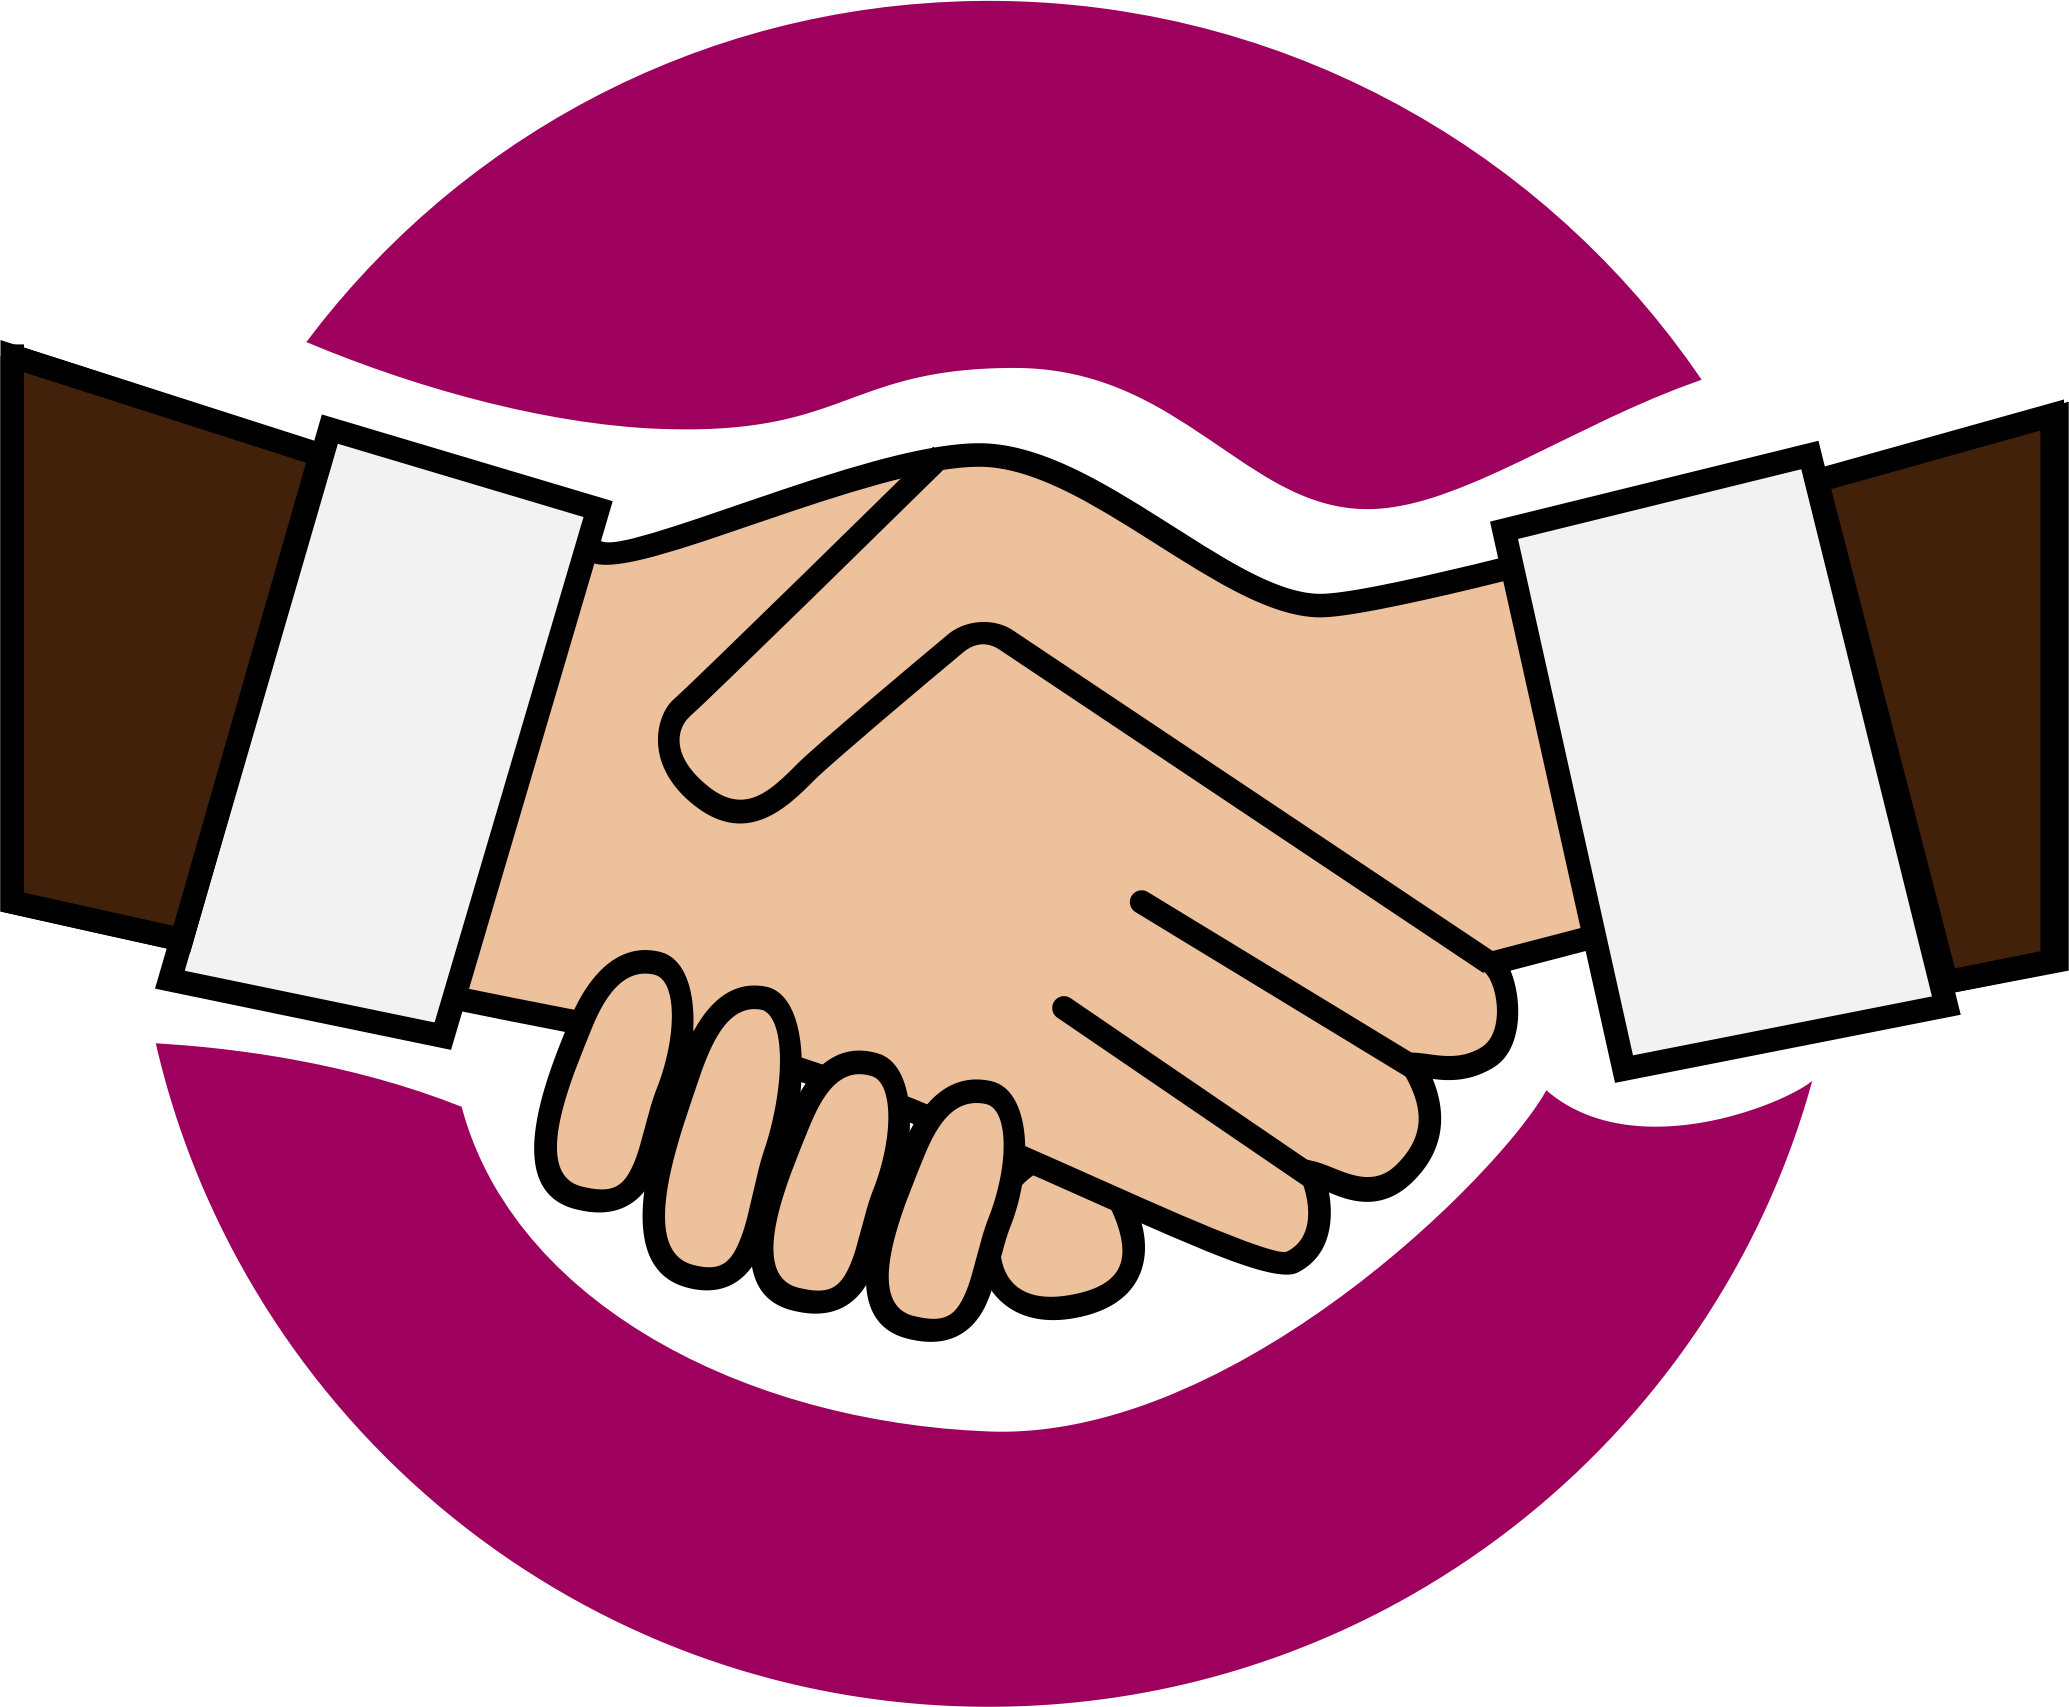 Friendship Handshake Clipart